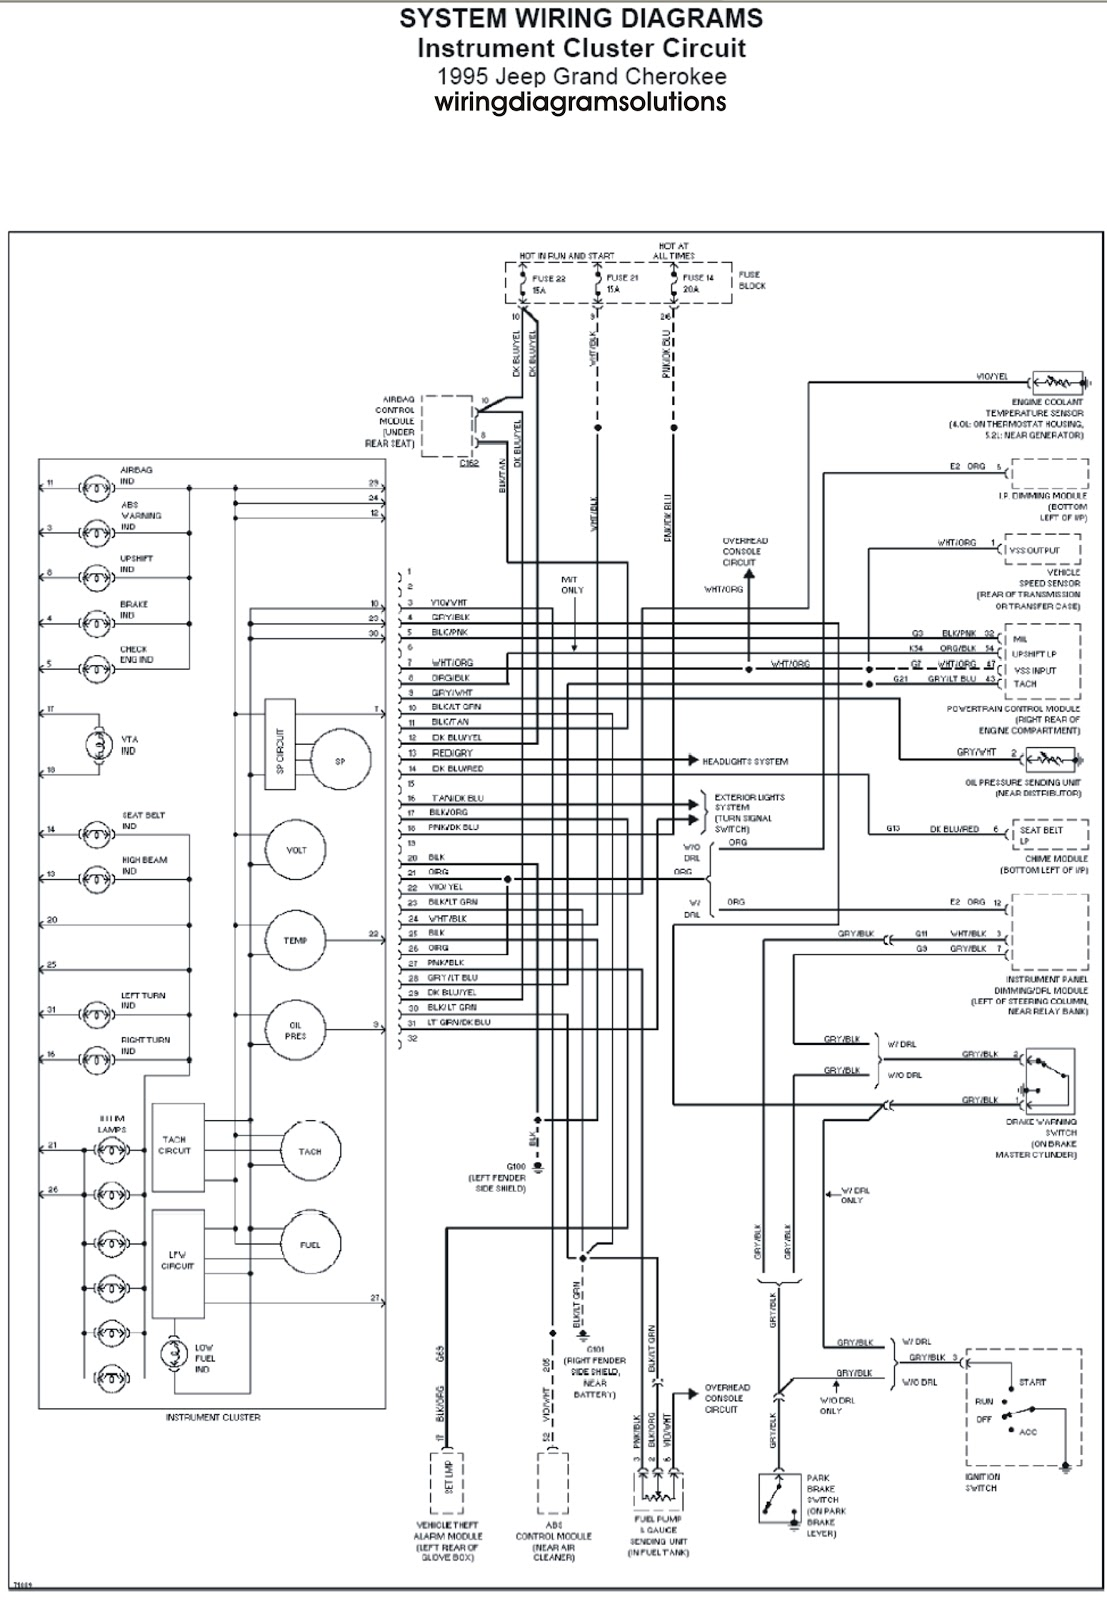 97 grand marquis wiring diagram wiring diagram third levelwire diagram 1997 grand marquis schematic diagrams 2000 [ 1107 x 1600 Pixel ]